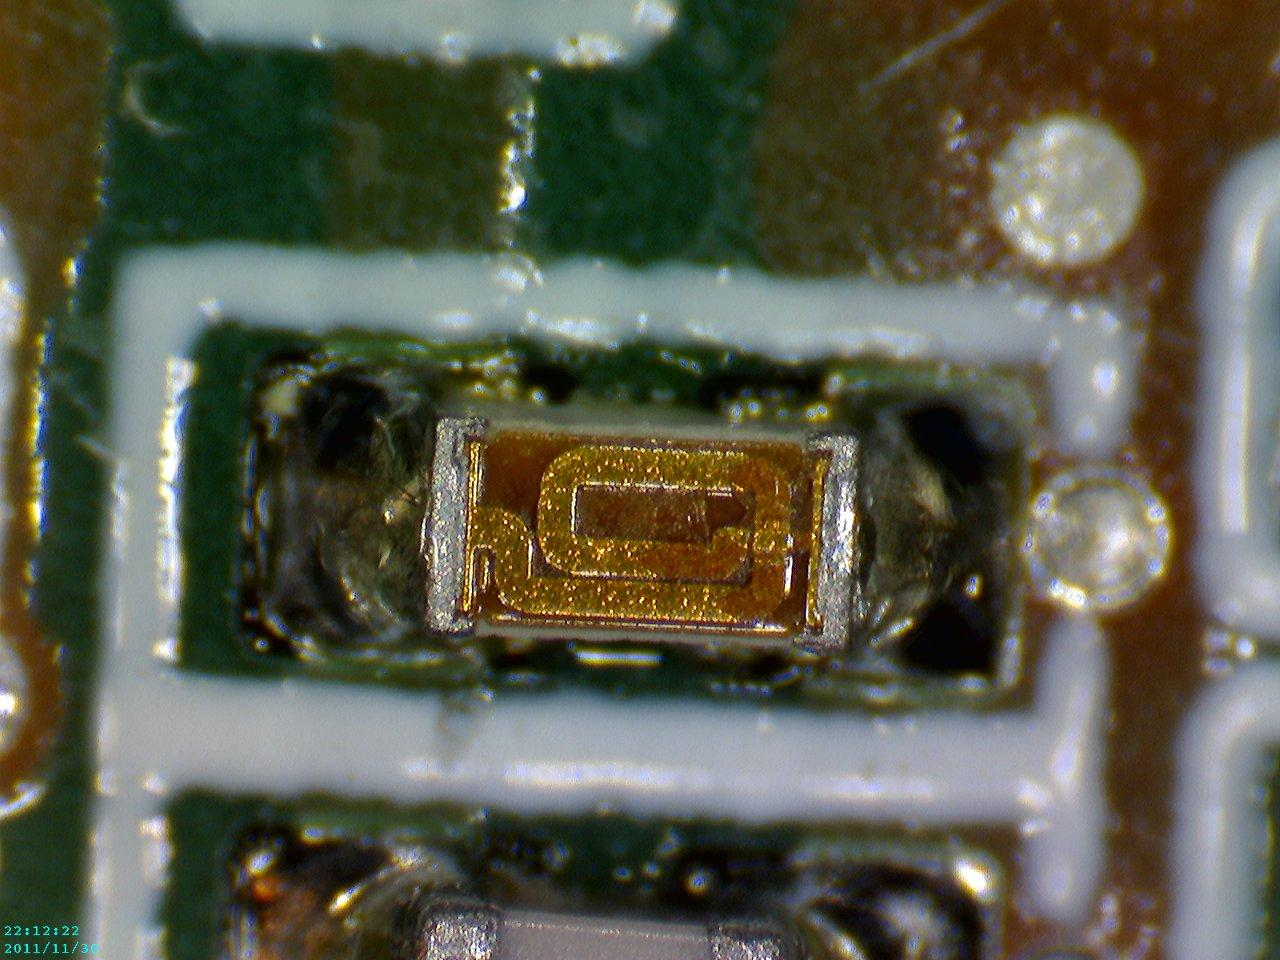 Caméra Microscope USB Firefly GT800 @230x (circuit components)